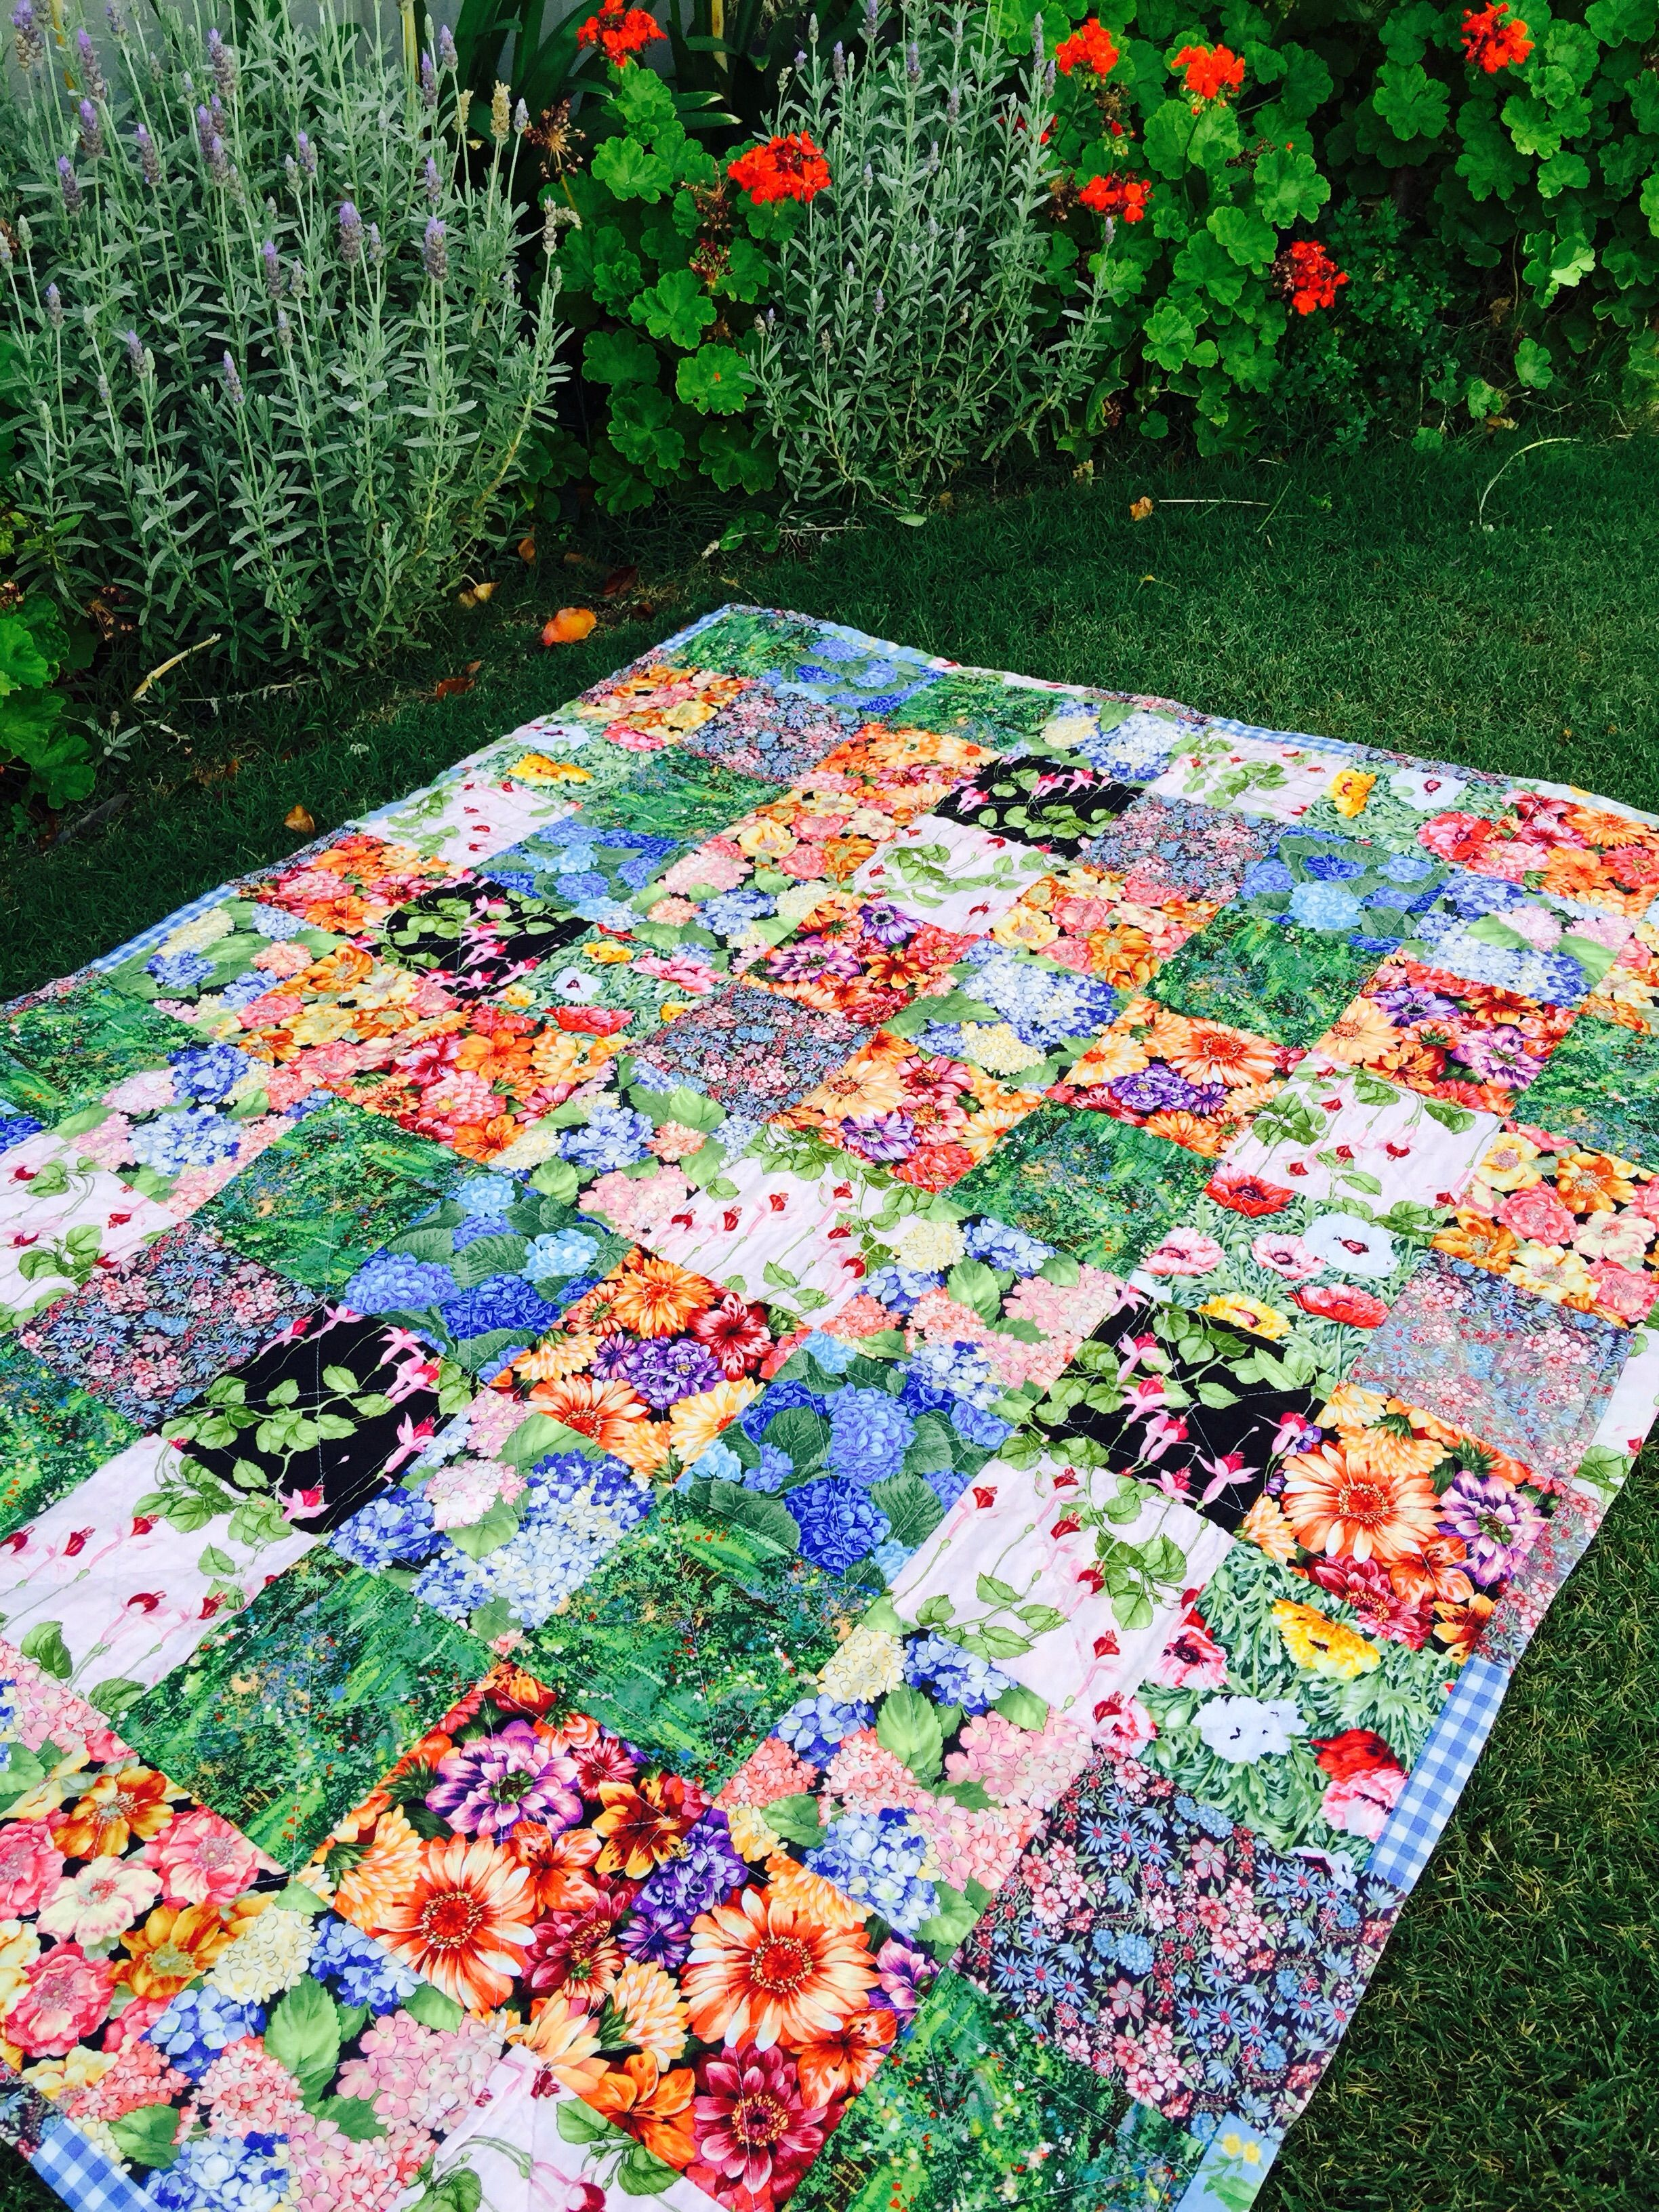 Easy Backyard Landscaping Ideas For Beginners In Square: Susie's Garden Lap Quilt